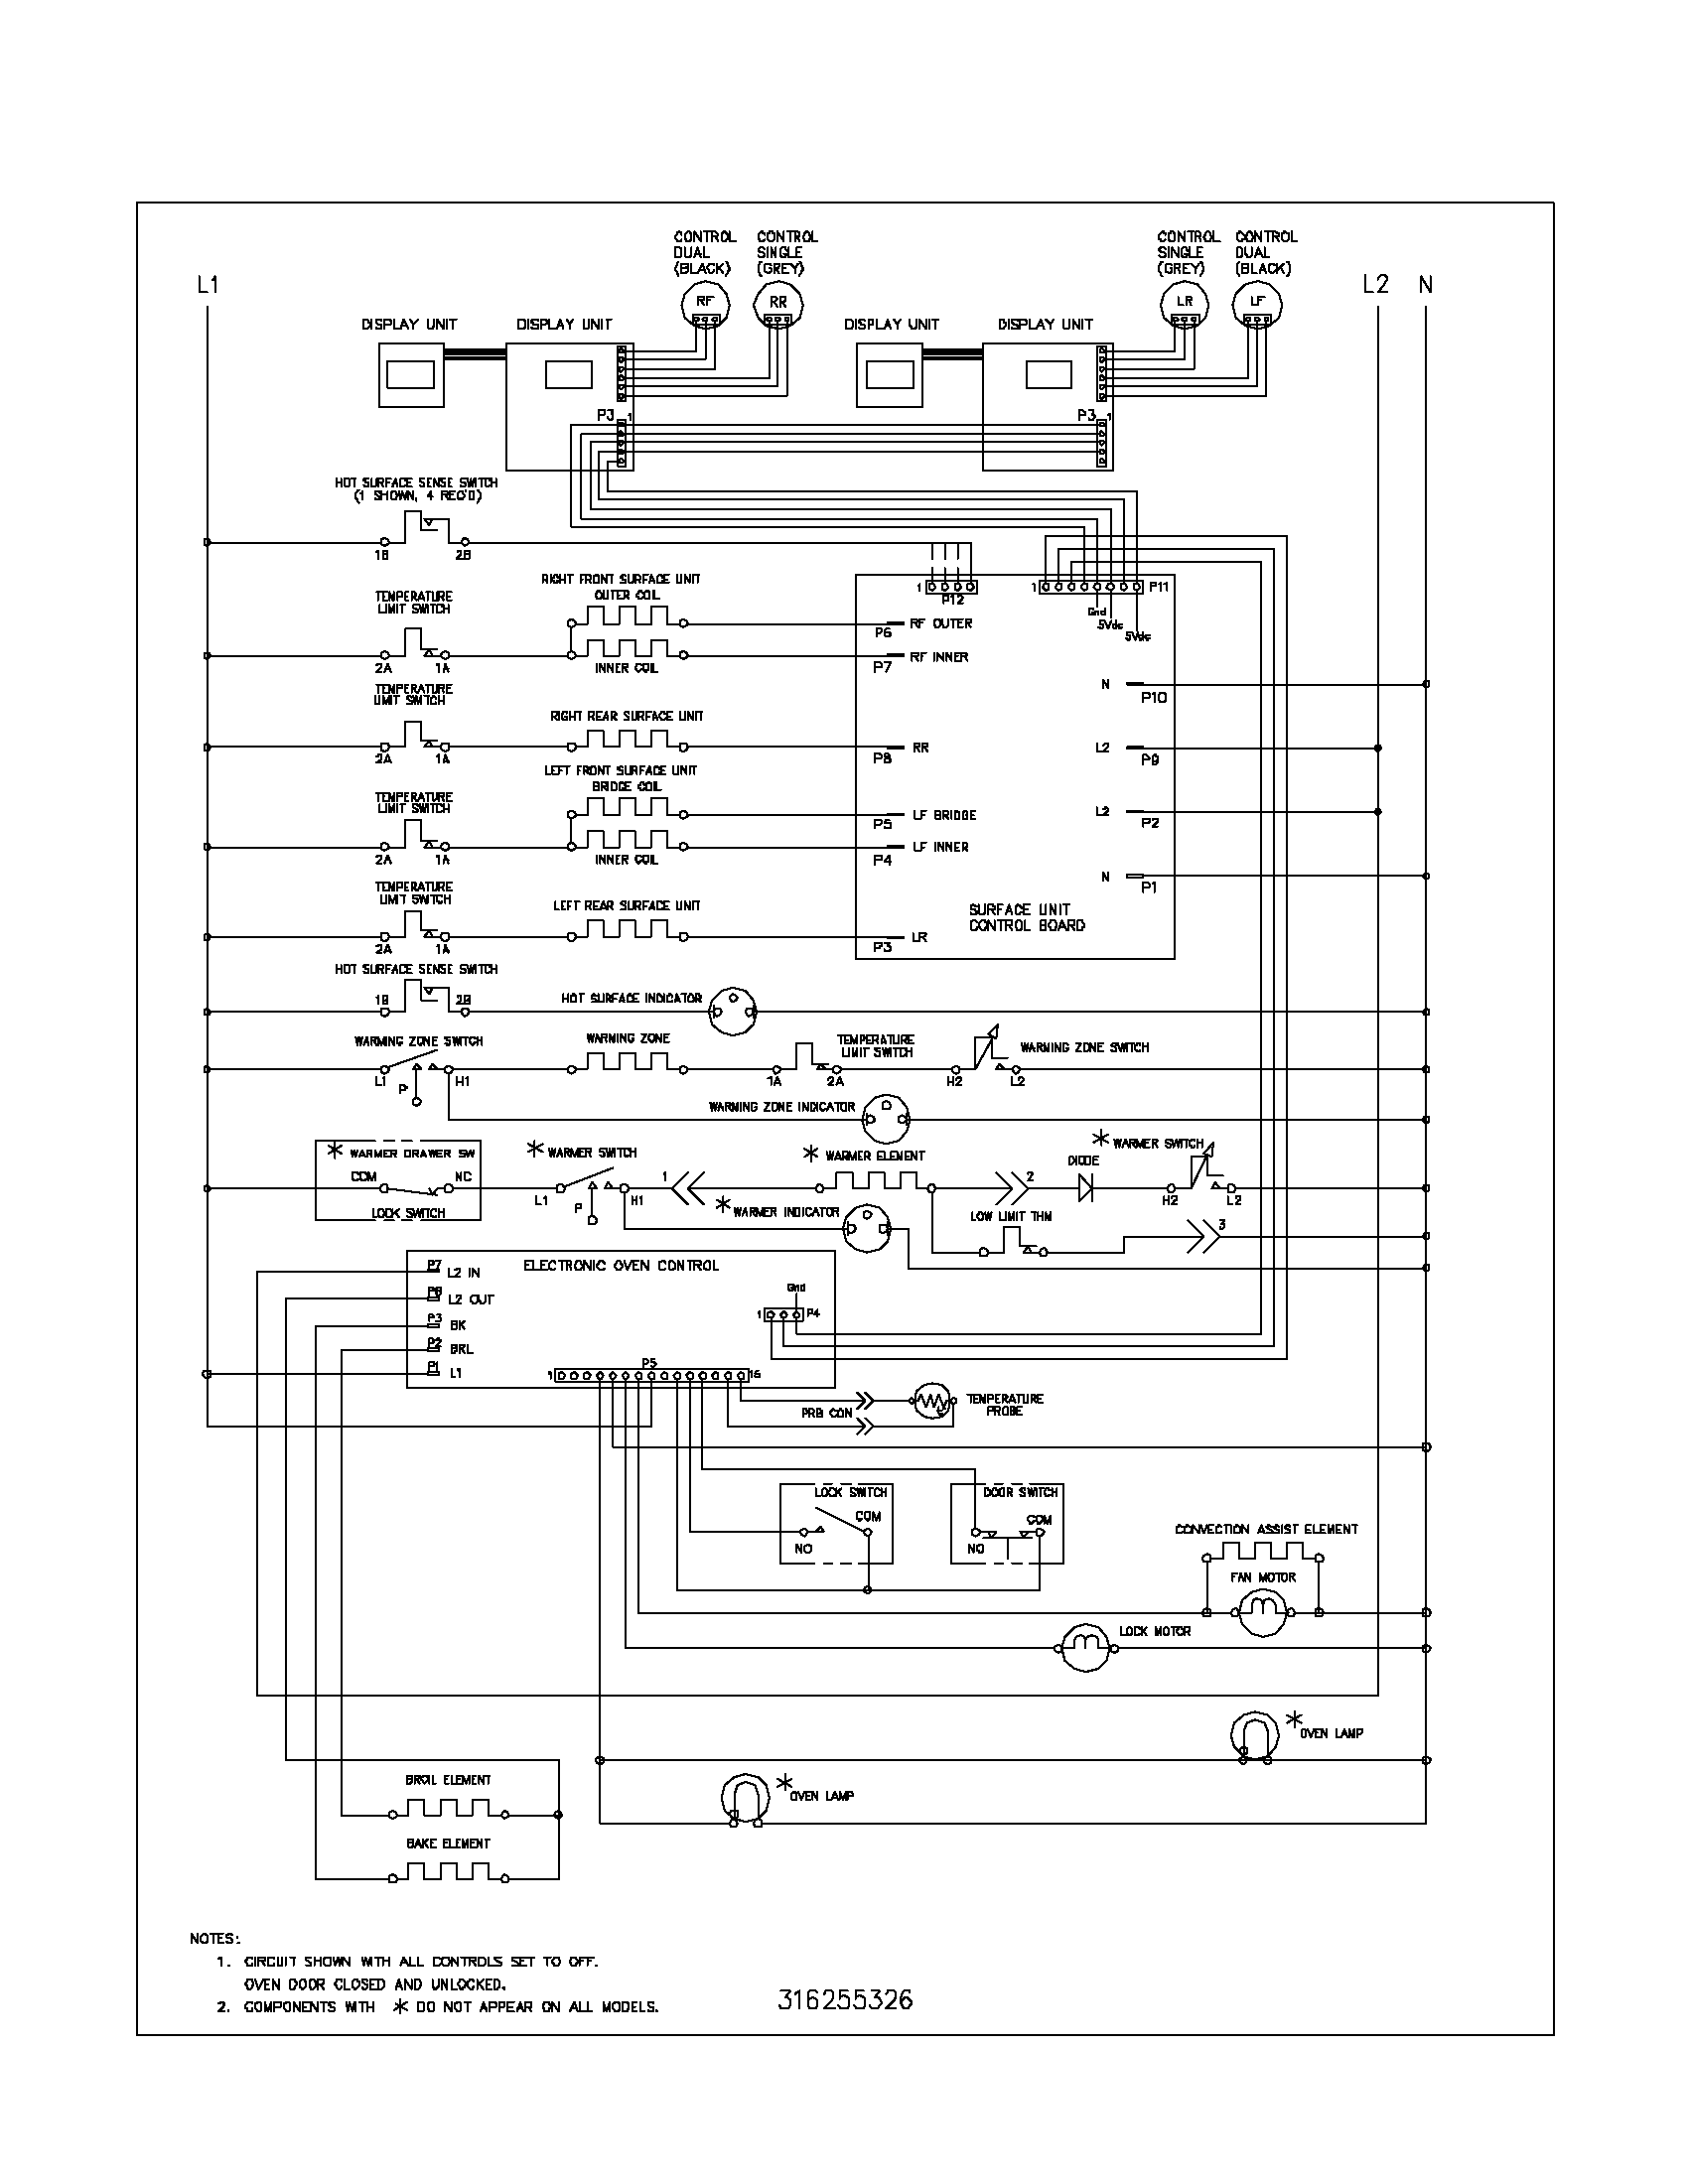 Wiring Diagram For Frigidaire Stove